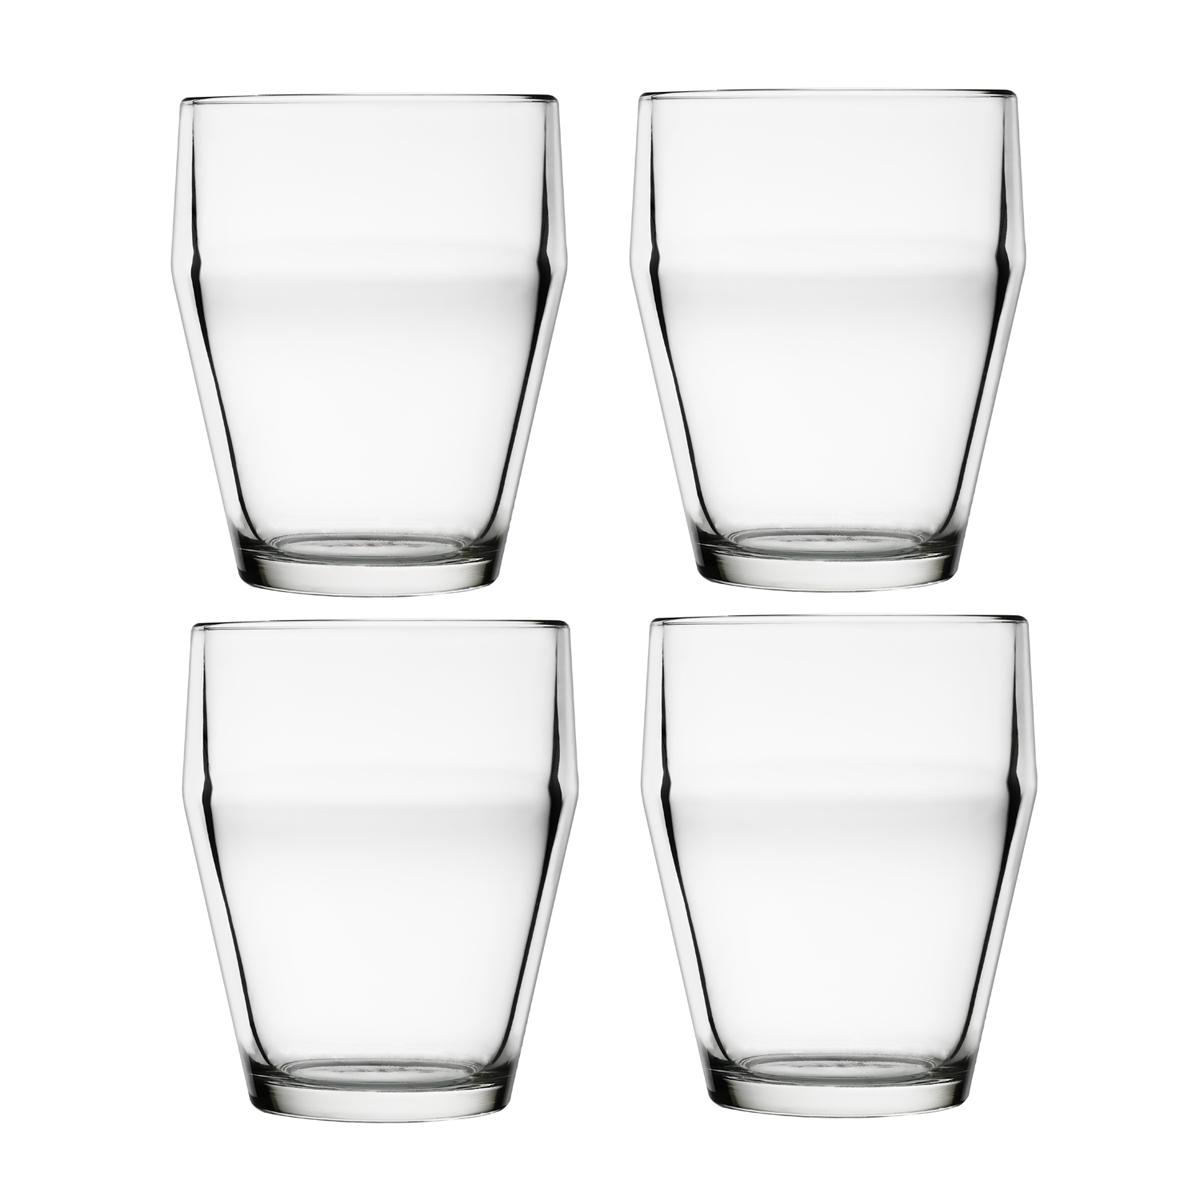 design house stockholm timo tumblers - Dinnerware Design House Stockholm